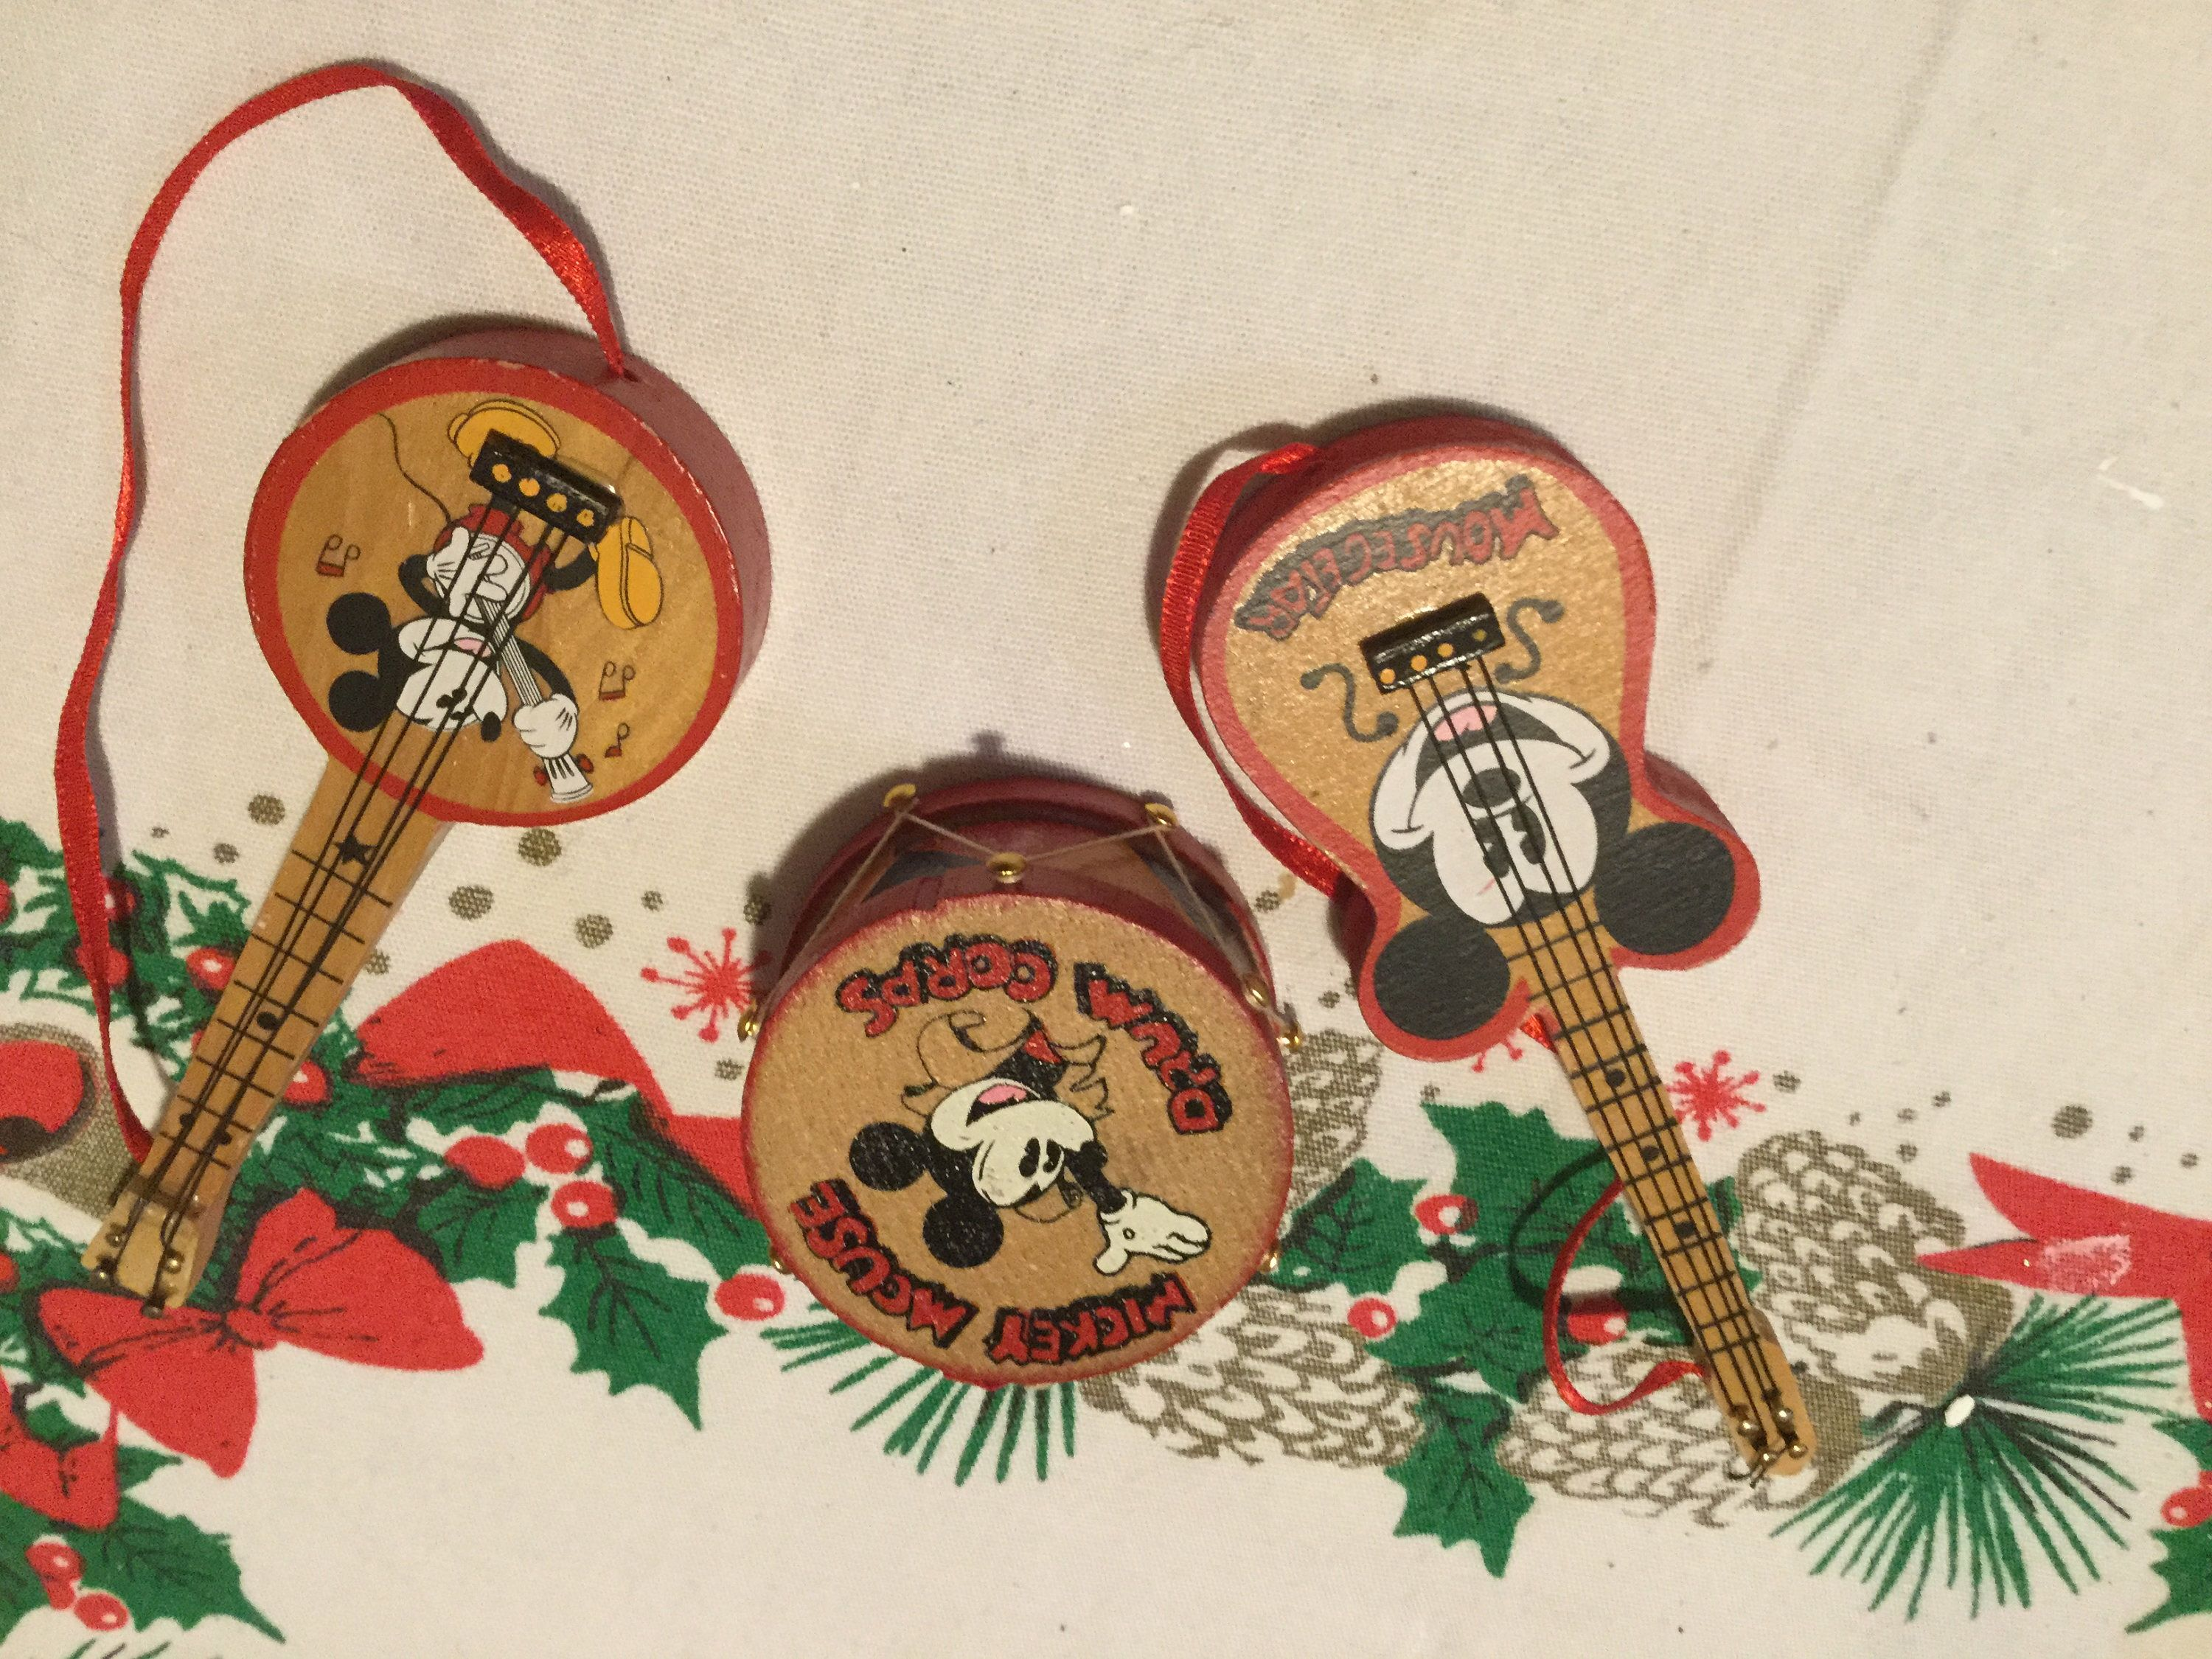 Vintage Disney Wooden Musical Ornaments By Kurt Adler Etsy Vintage Disney Wooden Ornaments Etsy